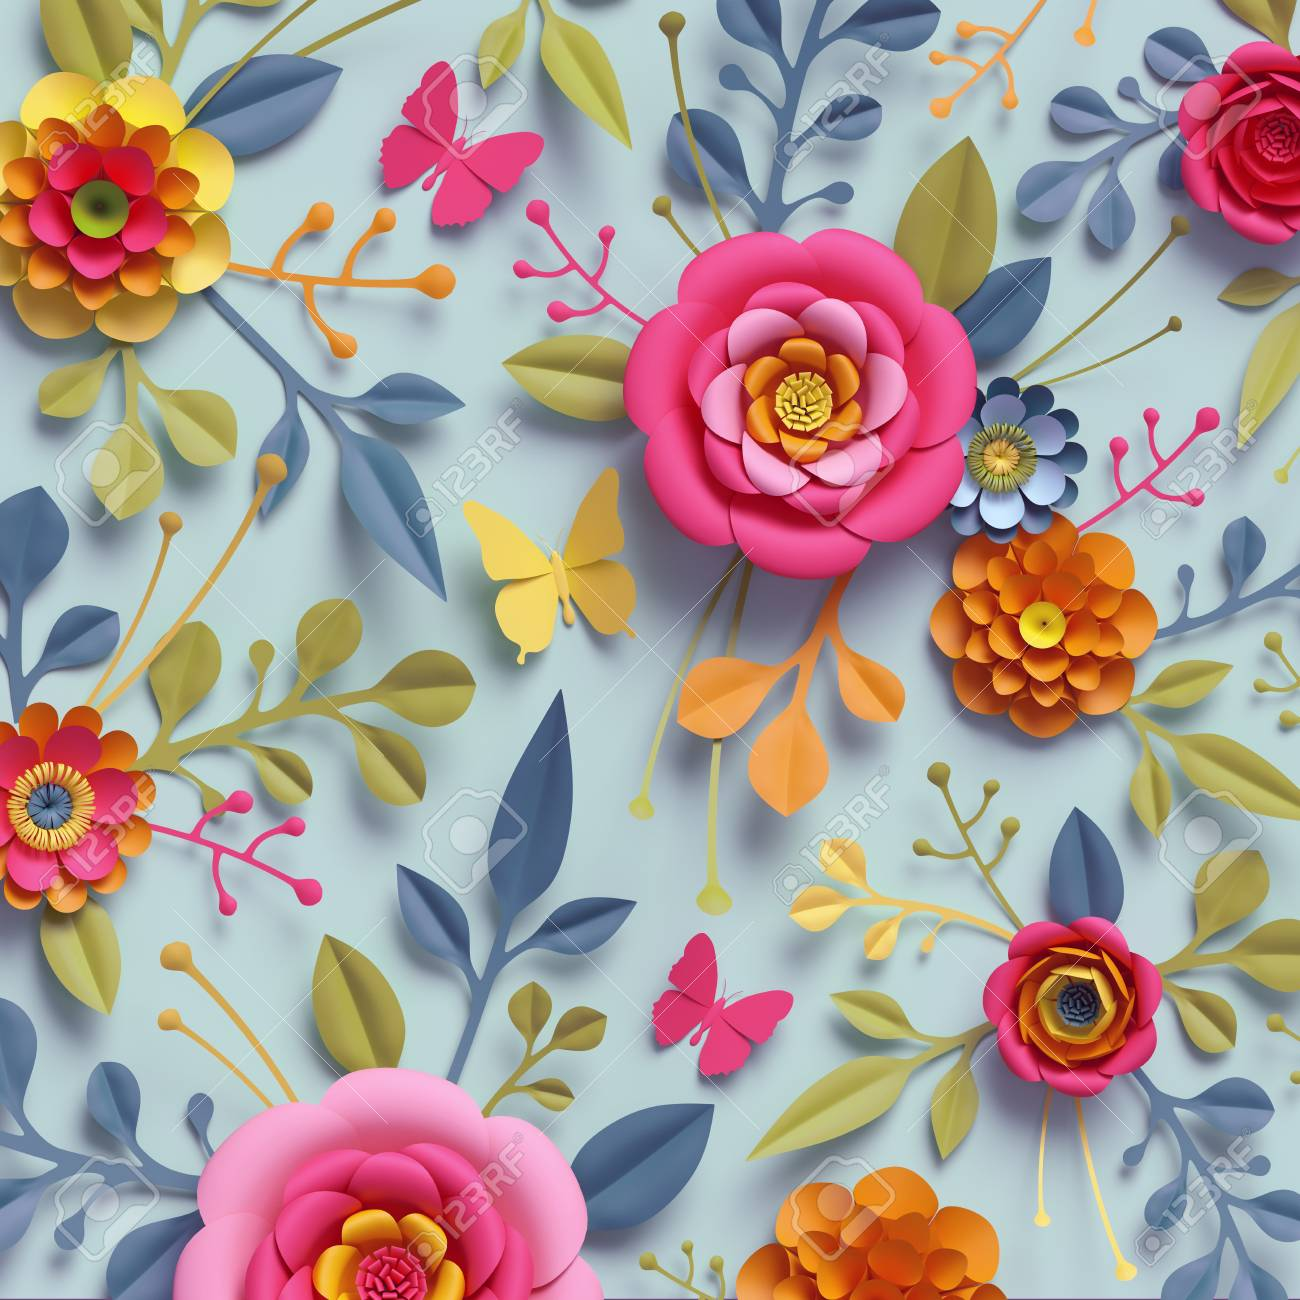 Flower Paper Wallpaper Kampa Luckincsolutions Org